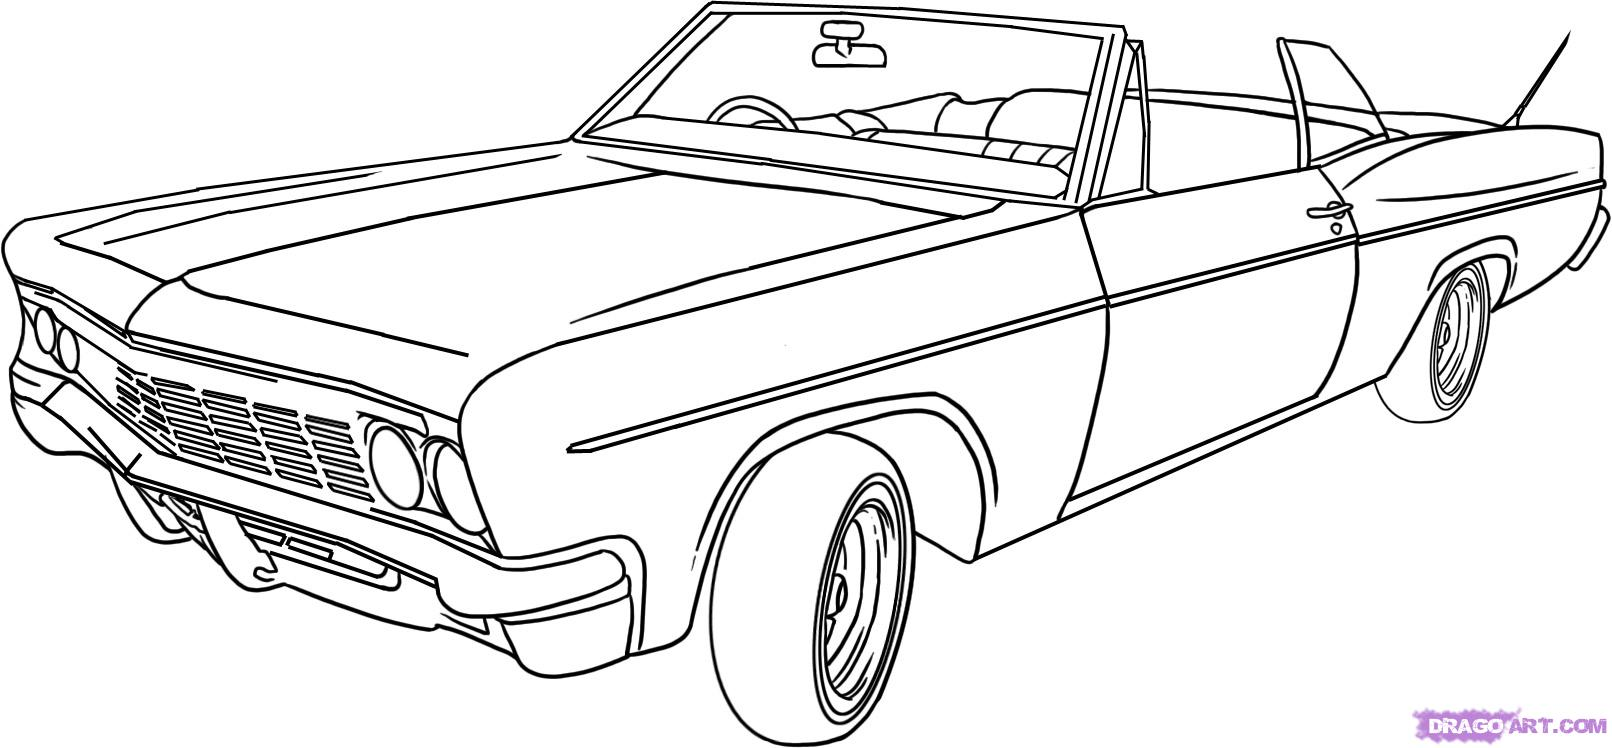 Drawn vehicle lowrider 6 How Online Draw Draw